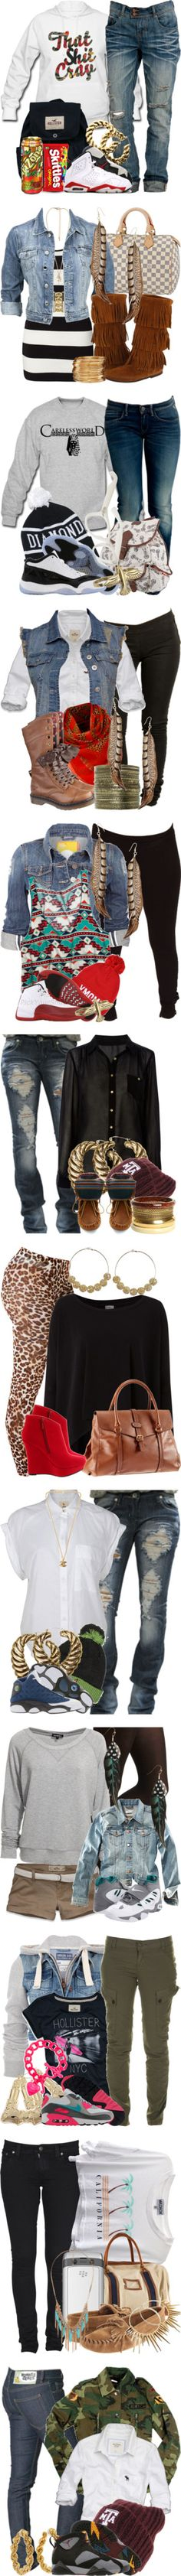 """""""swagger like us"""" by indigow99 ❤ liked on Polyvore"""